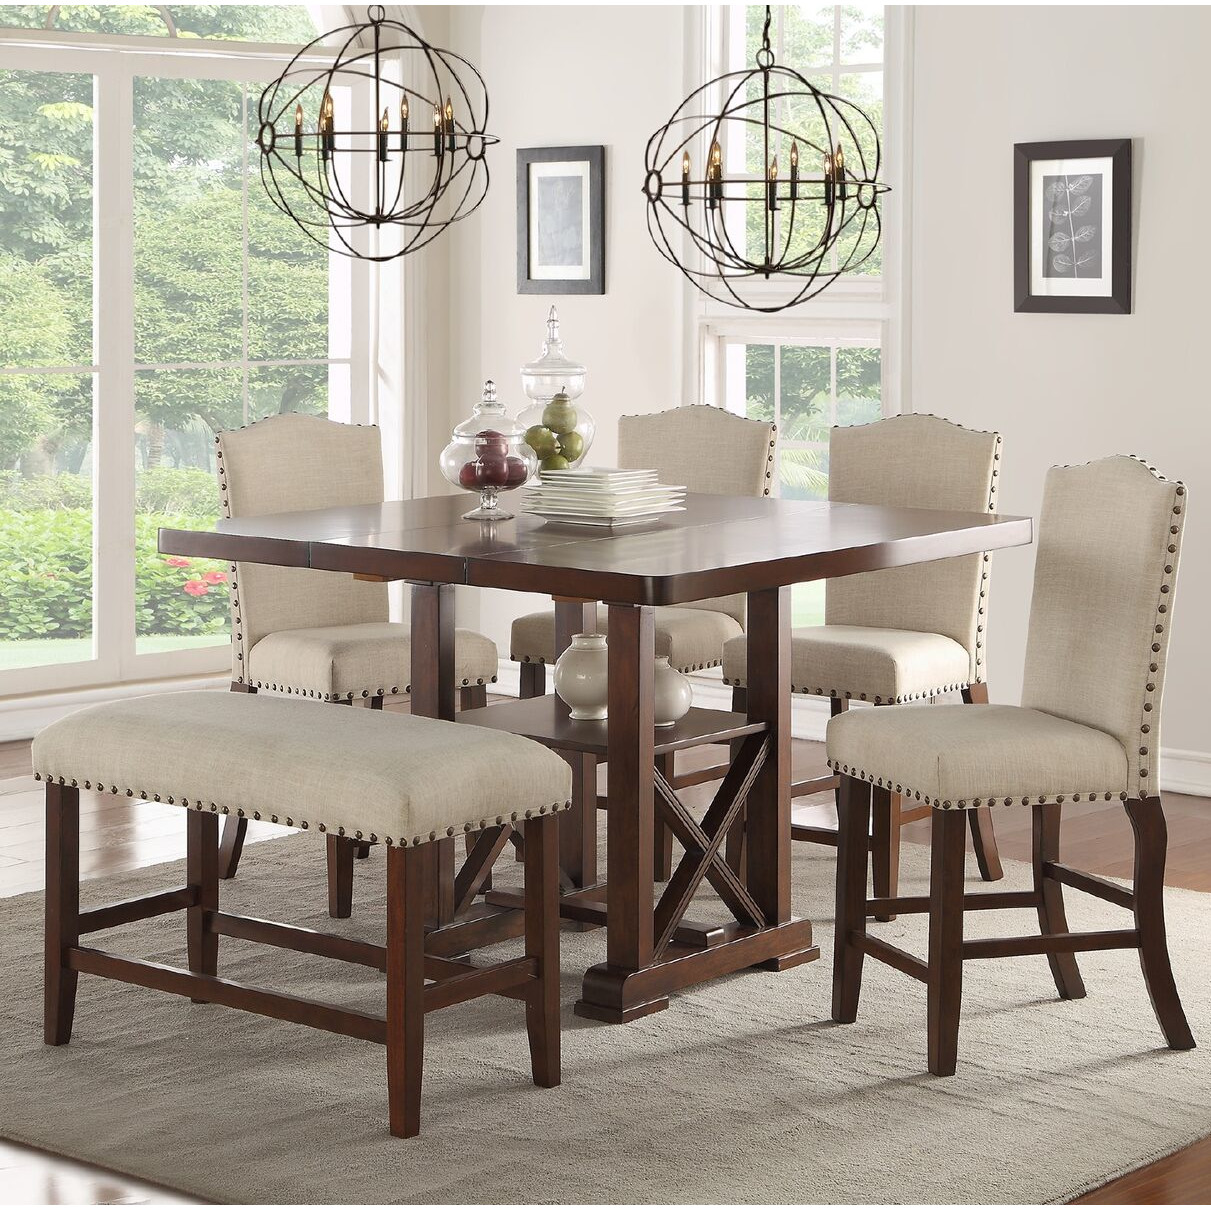 Best Amelie II 6 Piece Counter Height Dining Set counter height dining set